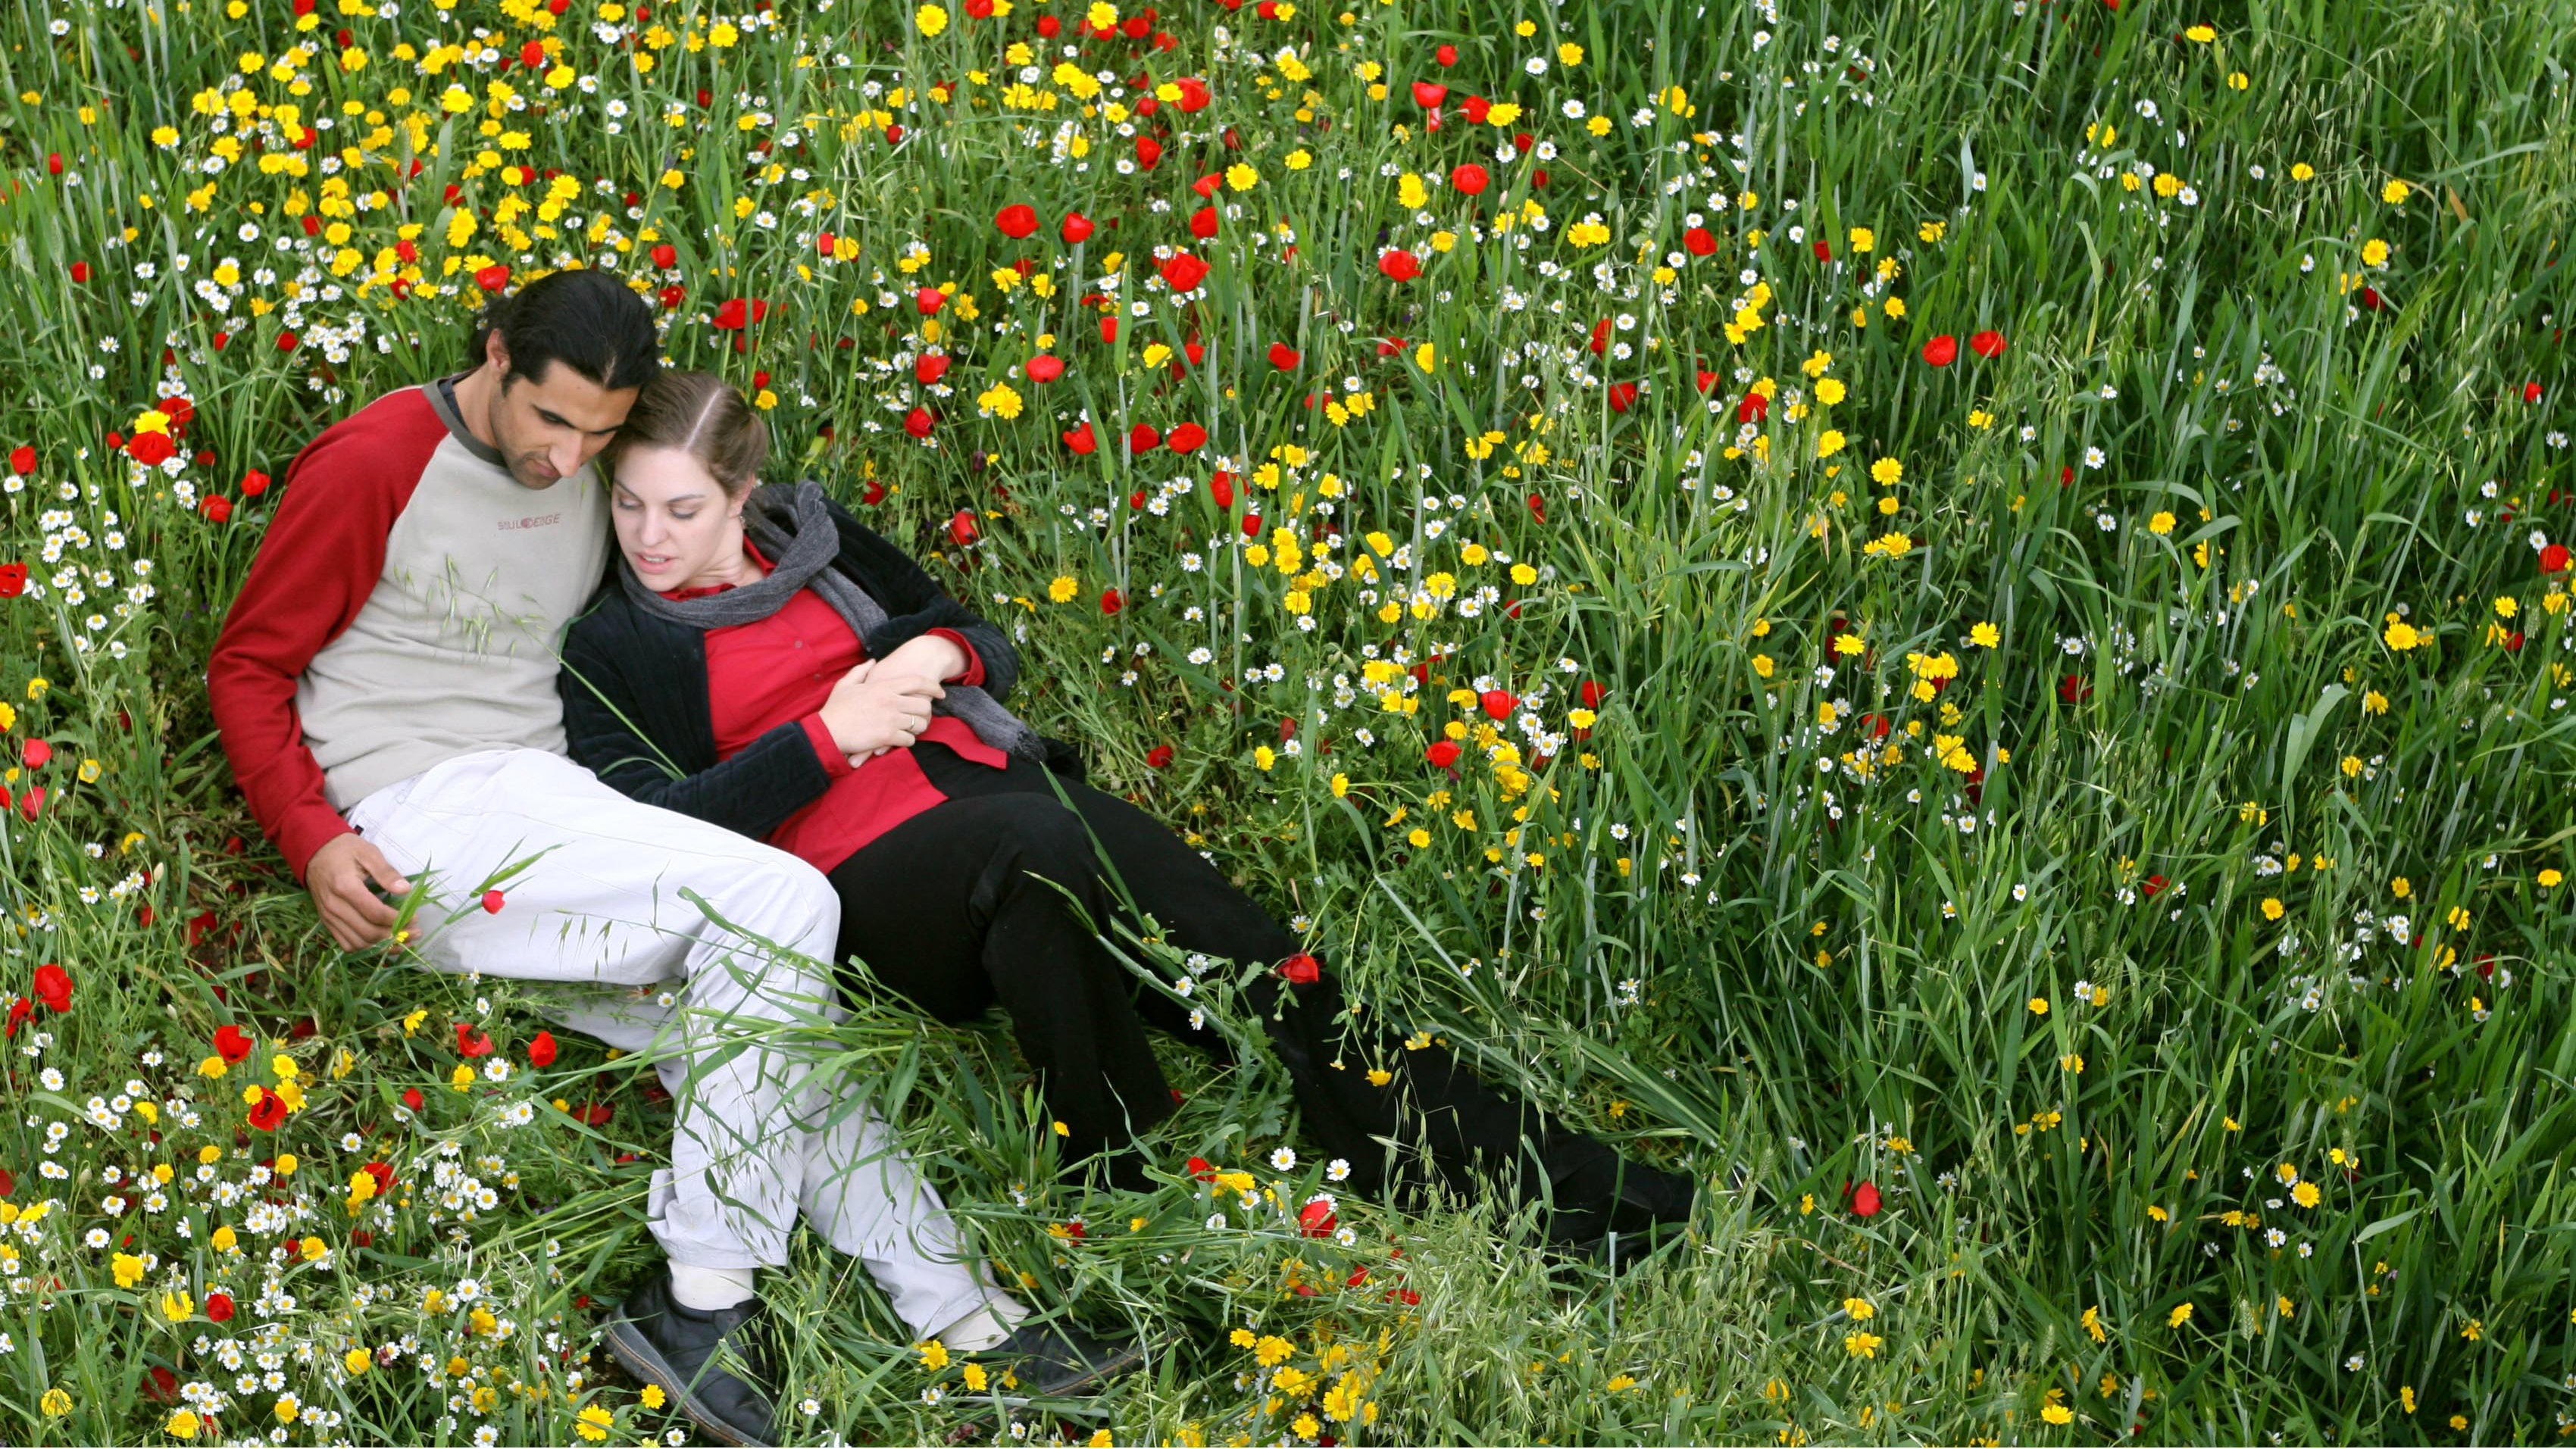 """Palestinian Muslim Osama Zatar, 26, spends some quiet time with his Israeli Jew wife, Jasmin Avissar, 25, near the West Bank village of Qarawat Bani Zeid near Ramallah, April 10, 2006. The couple's """"Romeo and Juliet"""" struggle to live together is a rare tale of cross-border love in a land riven by years of violence between Israel and Palestinians. Picture taken April 10, 2006. To match feature MIDEAST-COUPLE REUTERS/Eliana Aponte"""